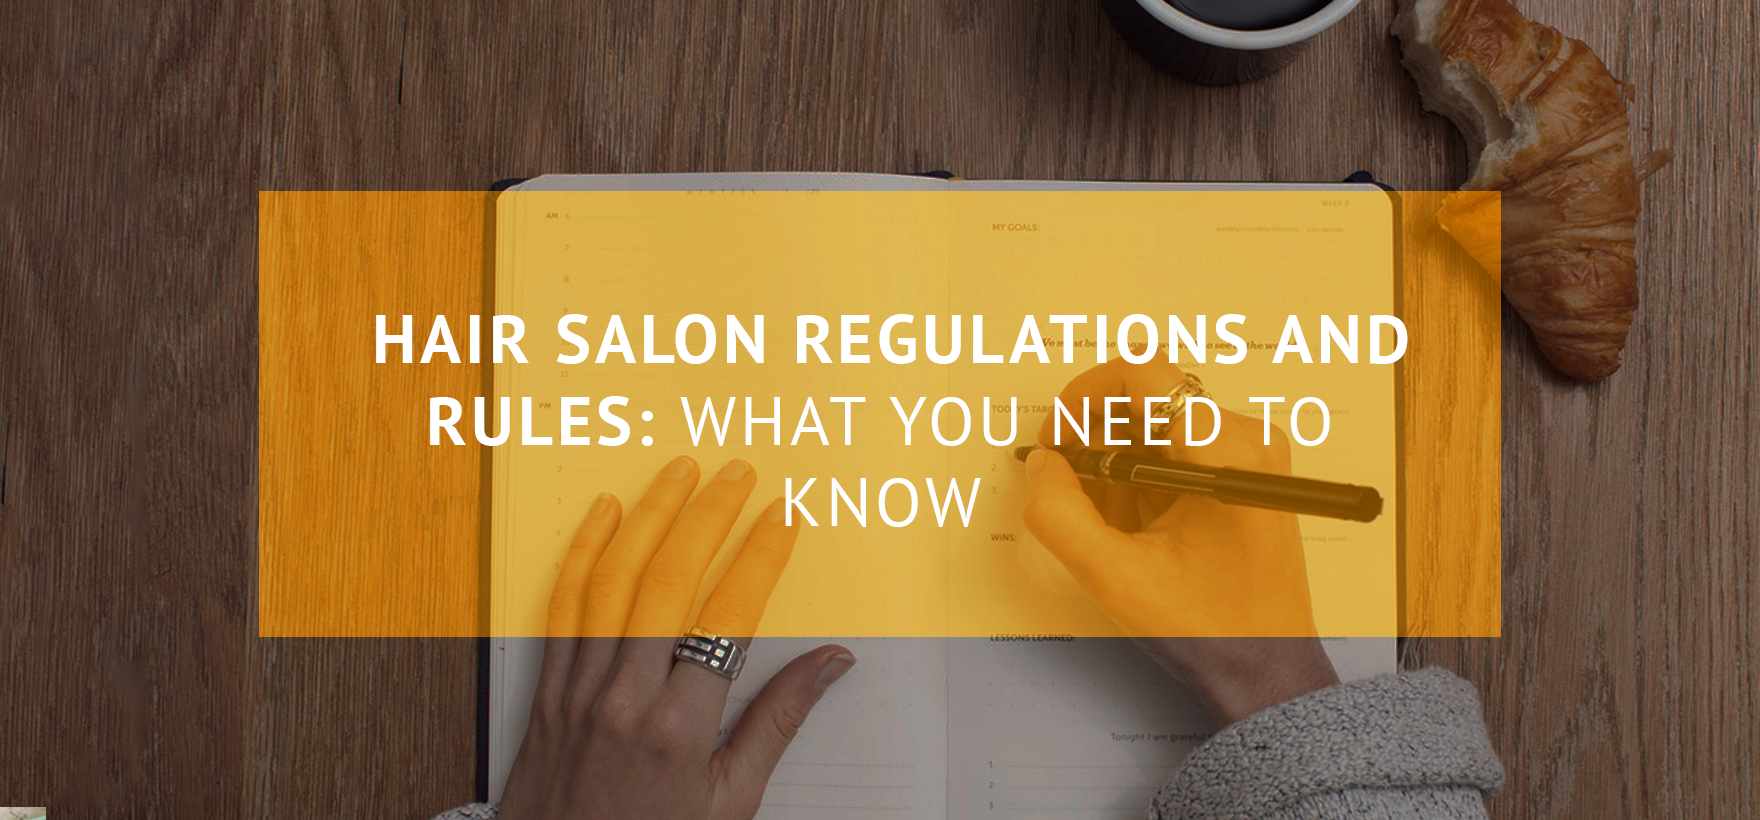 [:en]Hair Salon Regulations and Rules: What You Need to Know[:]